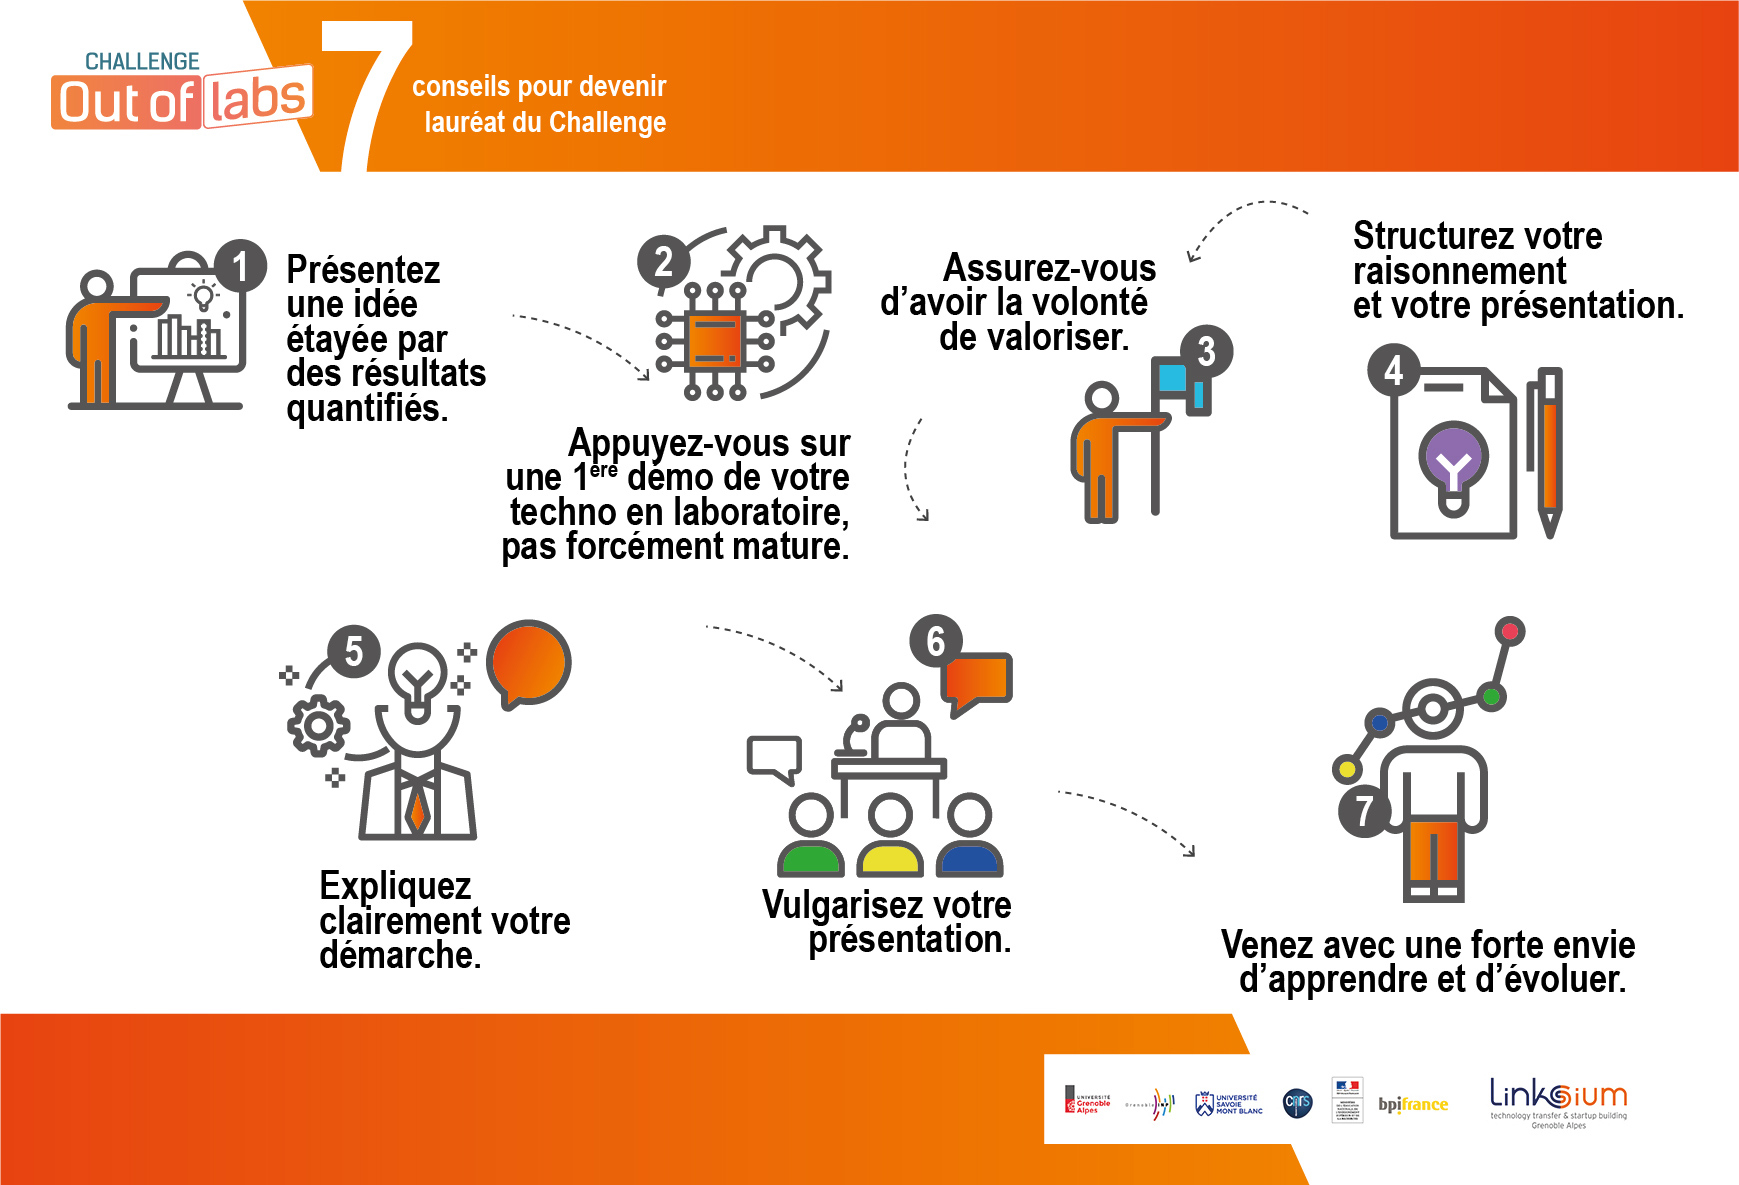 7 conseils pour remporter le Challenge Out of Labs